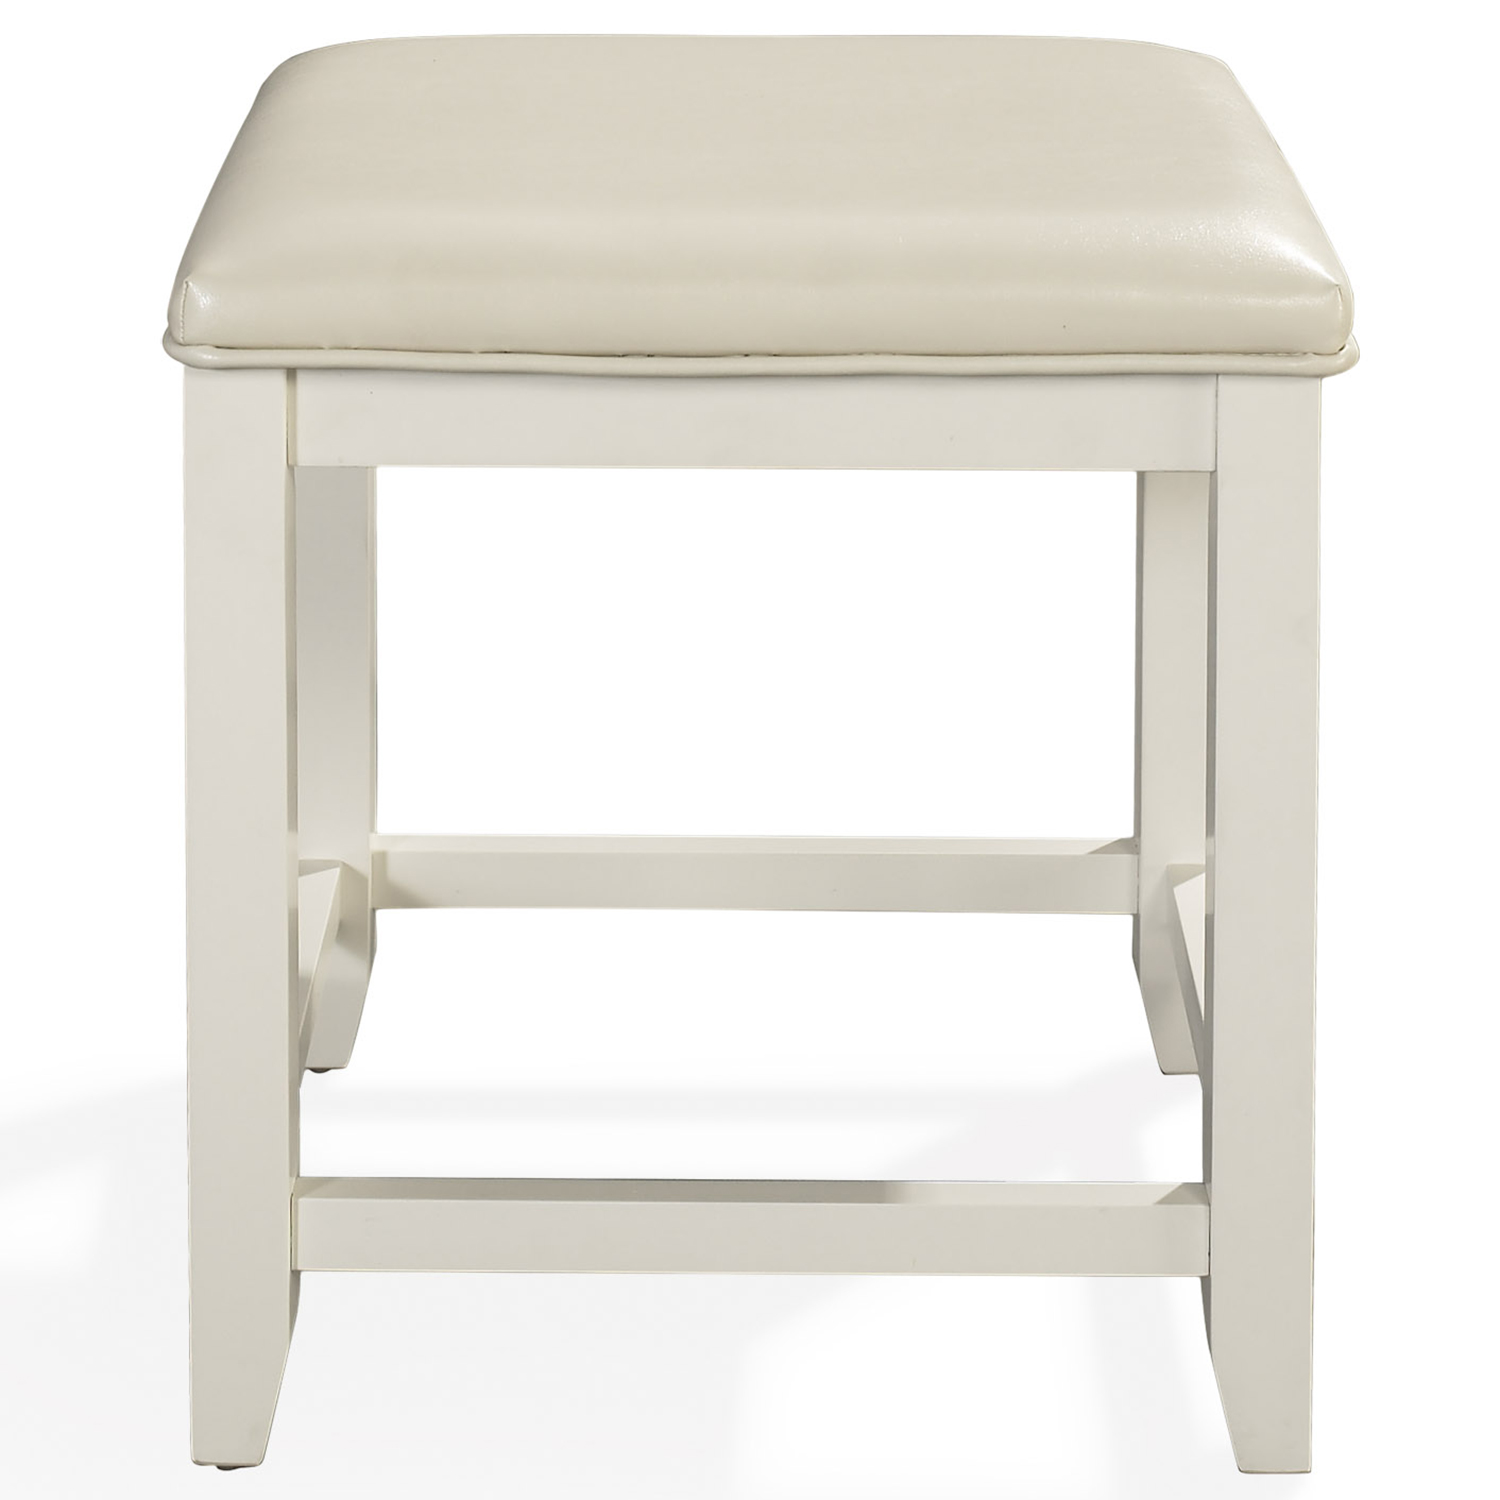 Outstanding Vista Bedroom Vanity Stool In White Finish By Crosley Andrewgaddart Wooden Chair Designs For Living Room Andrewgaddartcom